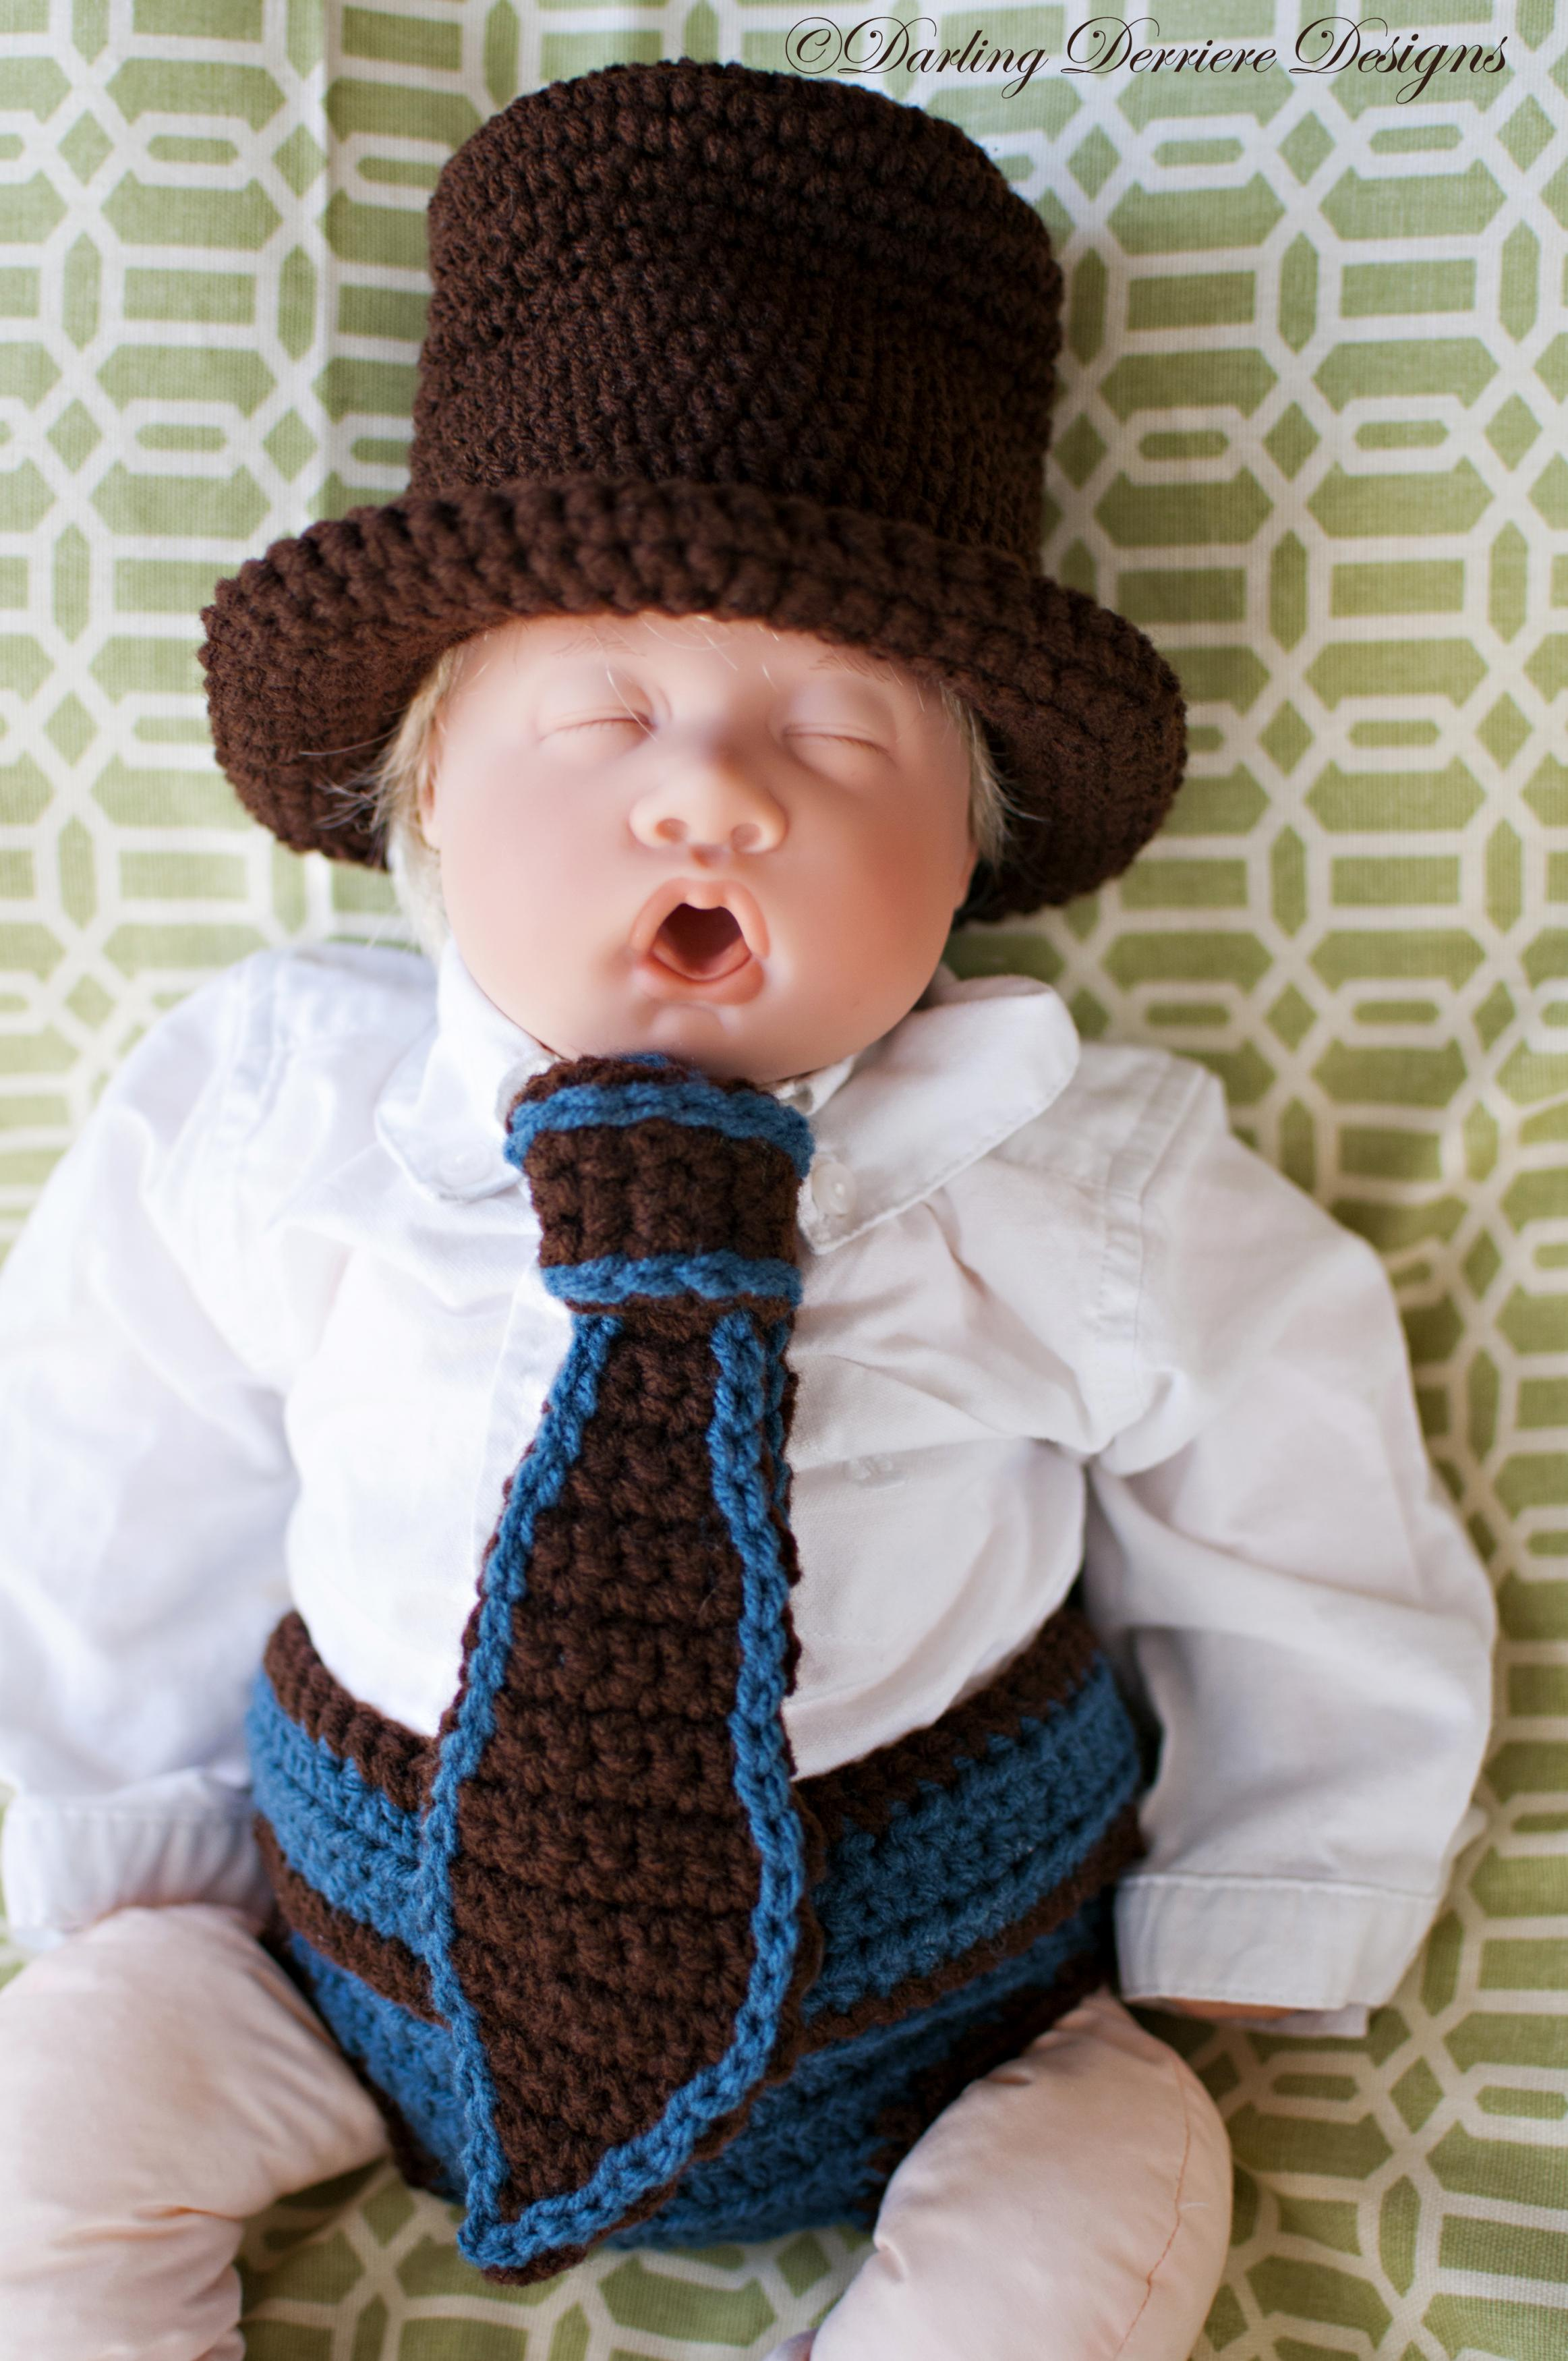 Crochet Pattern Top Hat : Top Hat, Tie, And Button Strap Diaper Cover Crochet ...